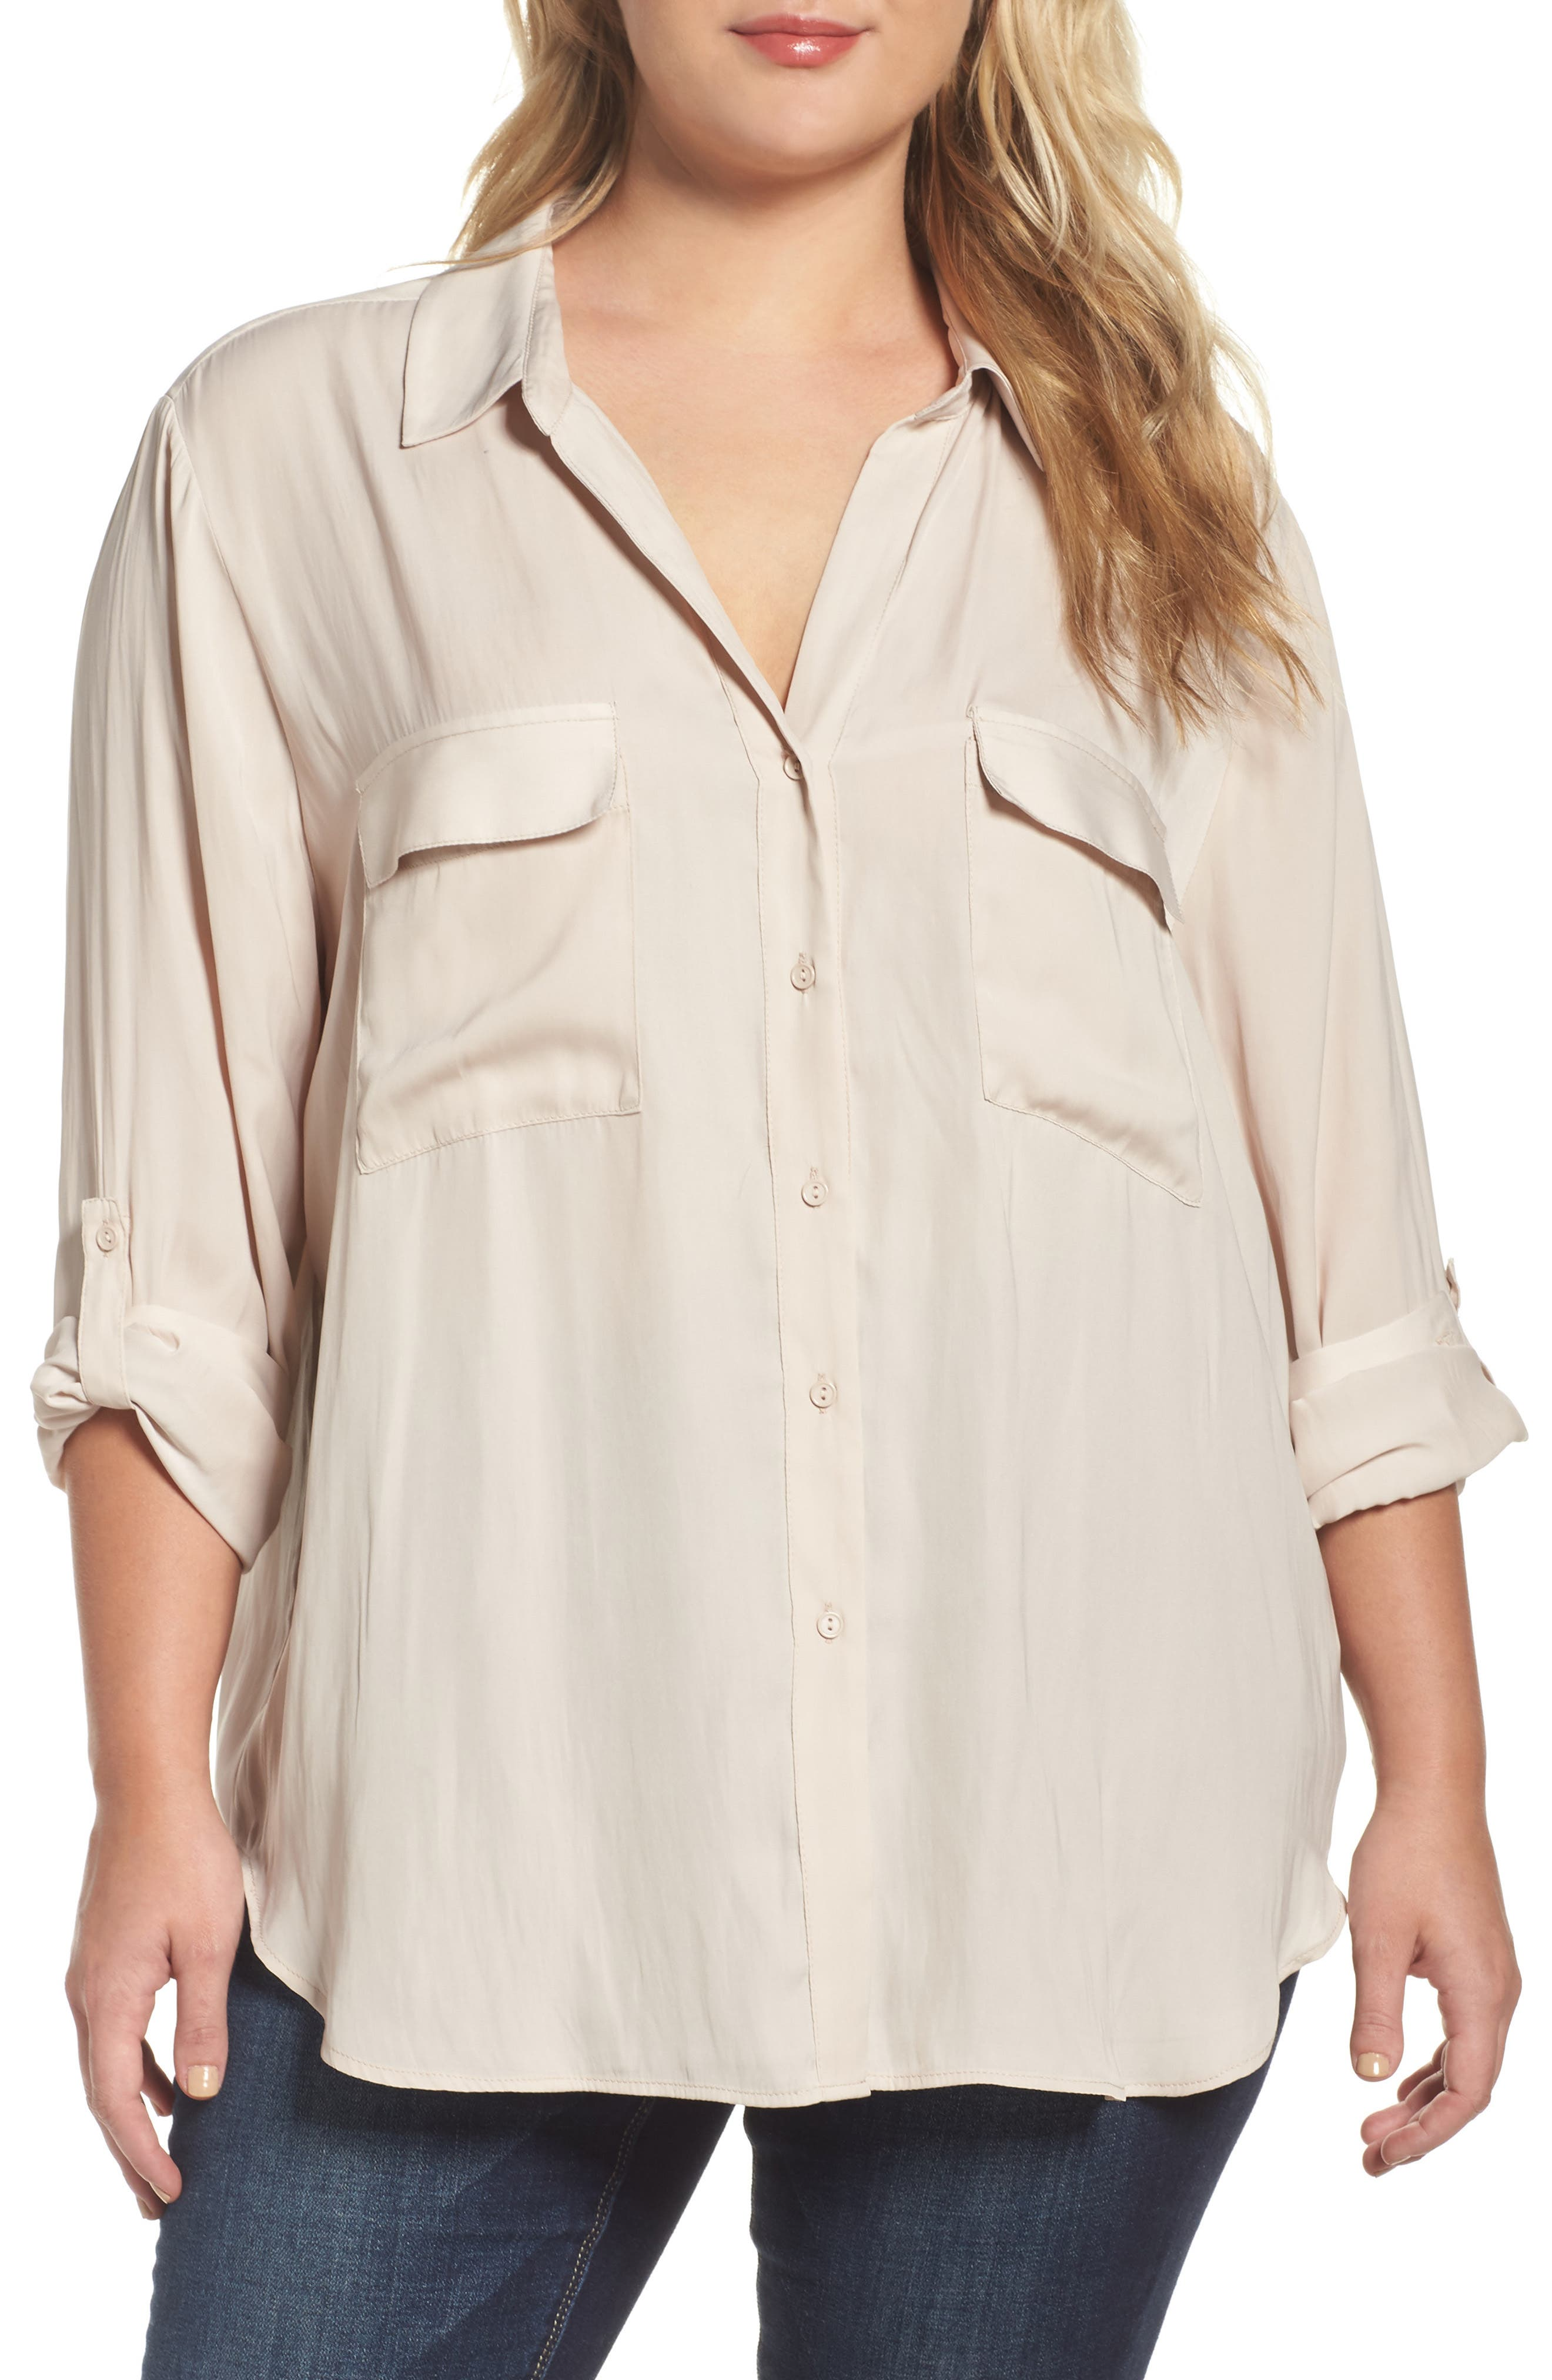 Alternate Image 1 Selected - Tart Carol Roll-Sleeve Blouse (Plus Size)